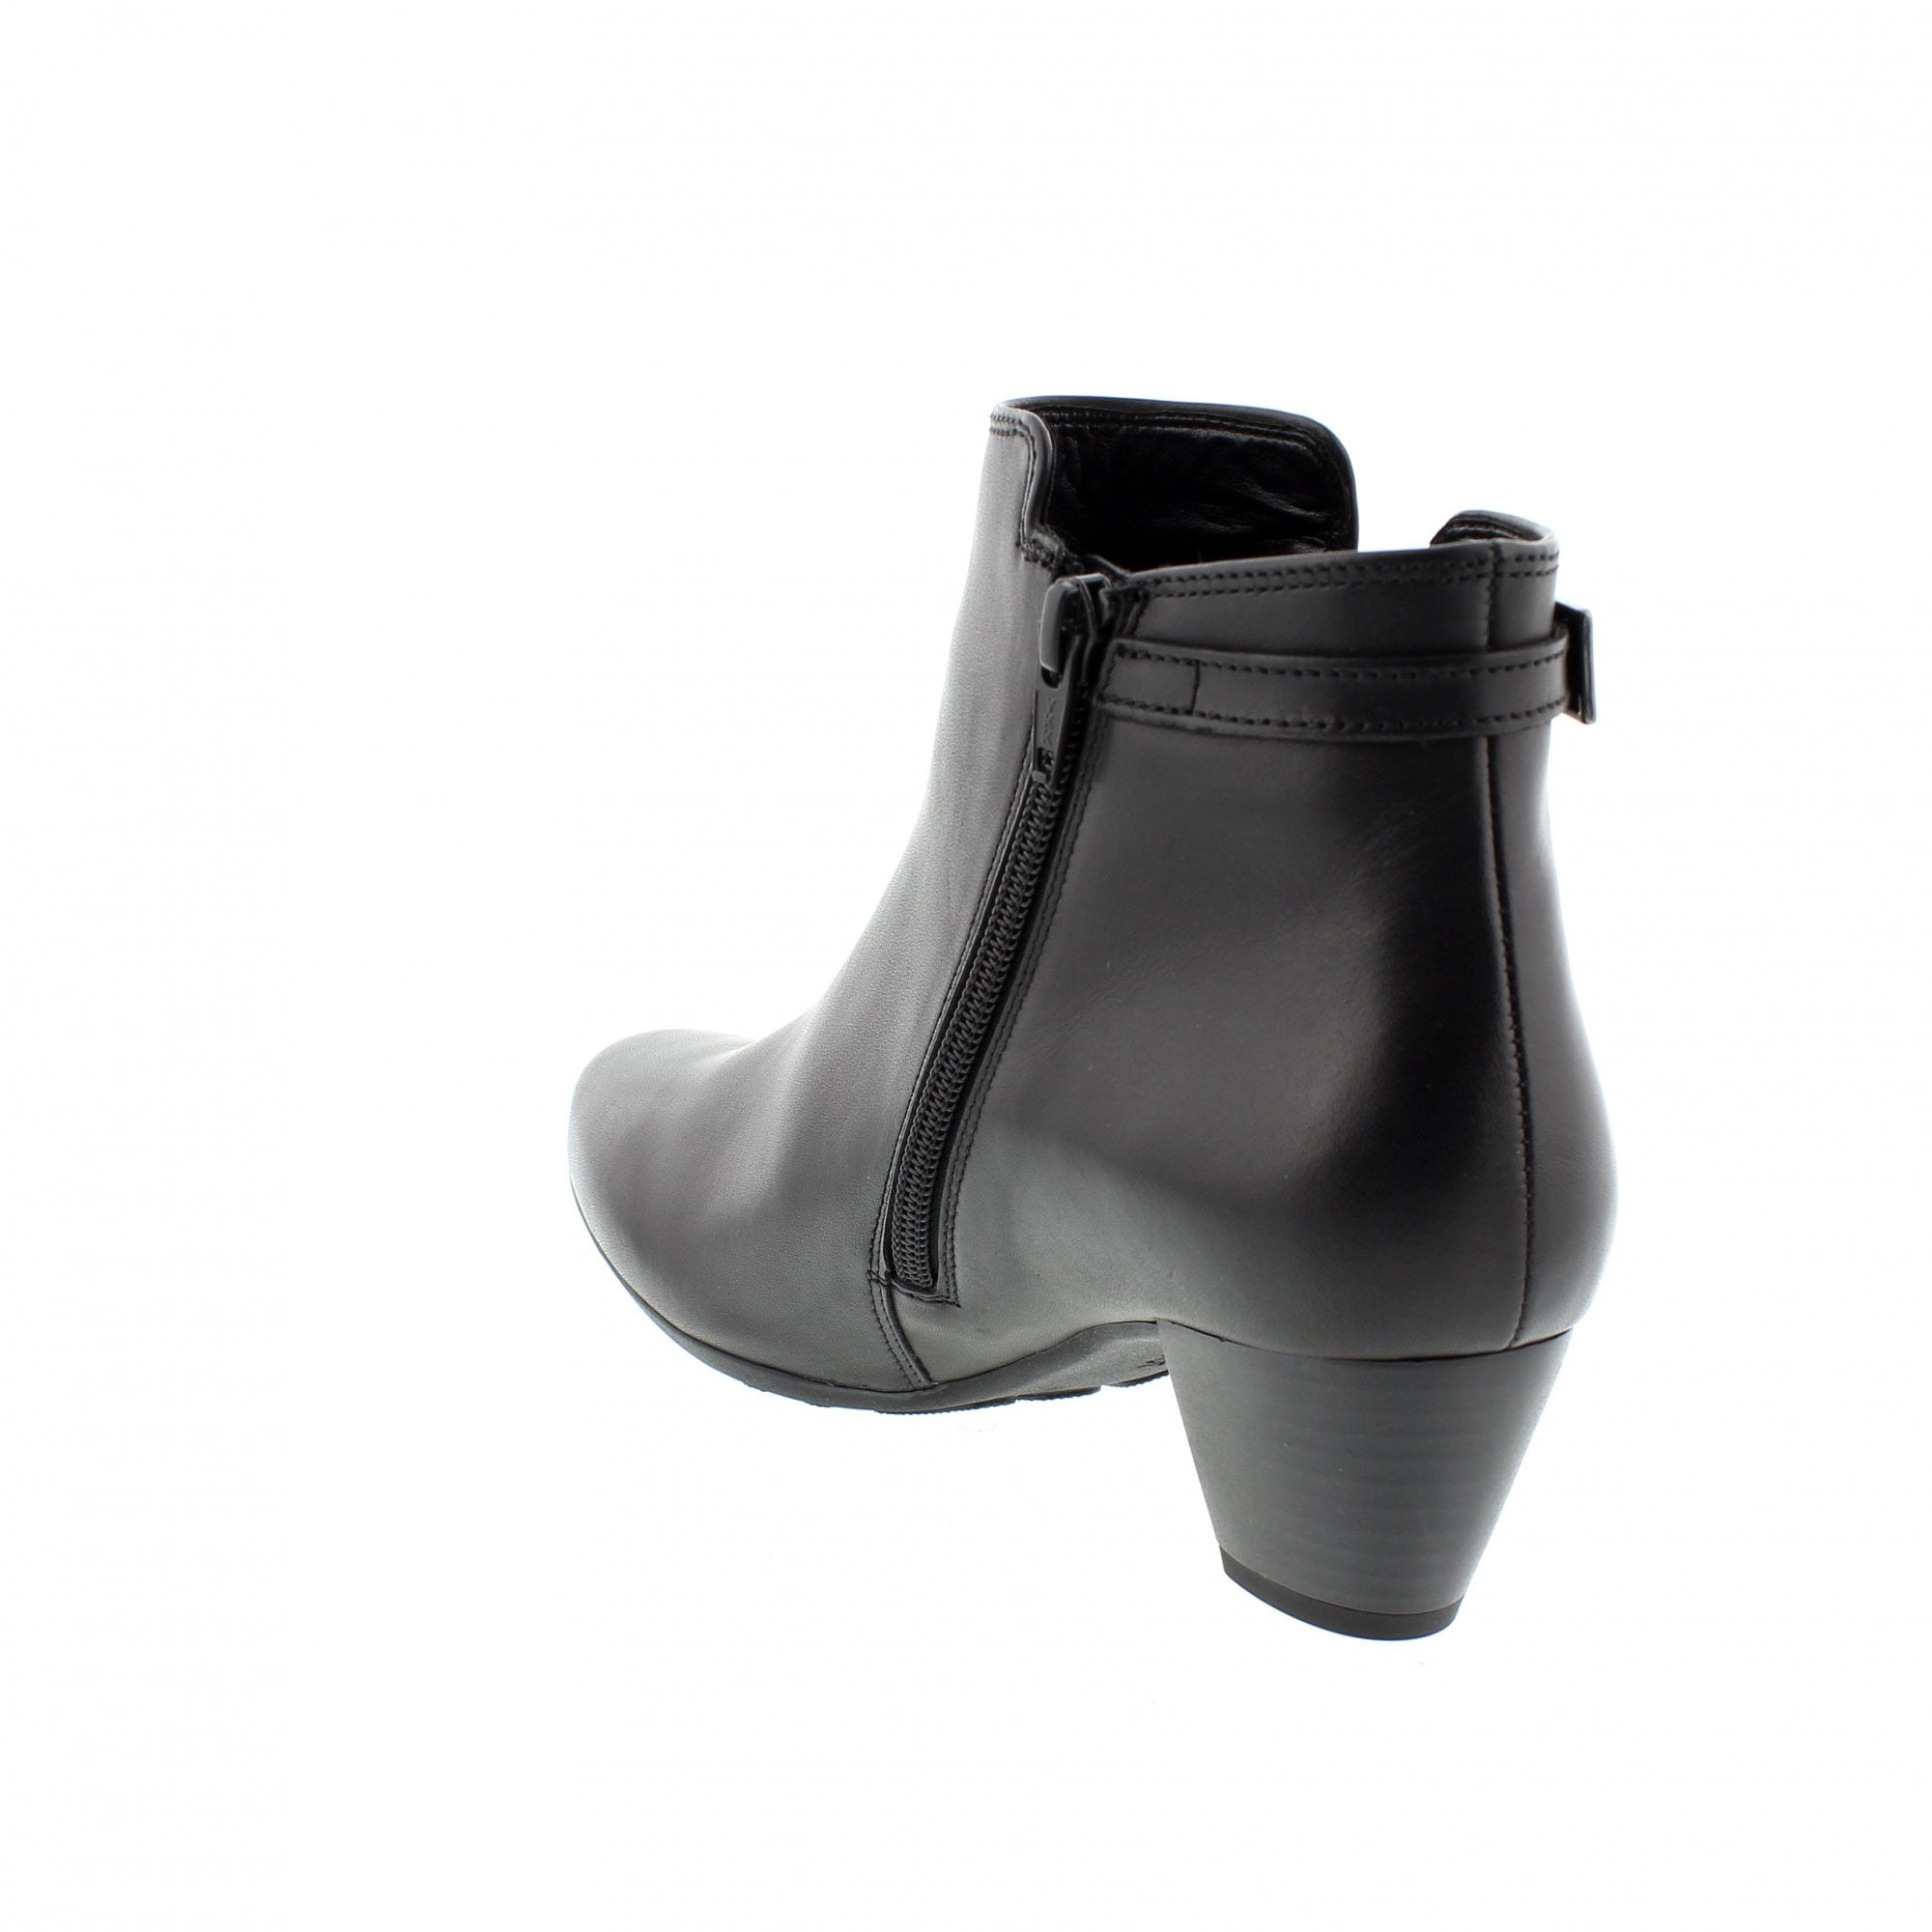 3a39867a1 Gabor Smudge 92-826-57 Black Leather Womens Ankle Boots | Rogerson Shoes